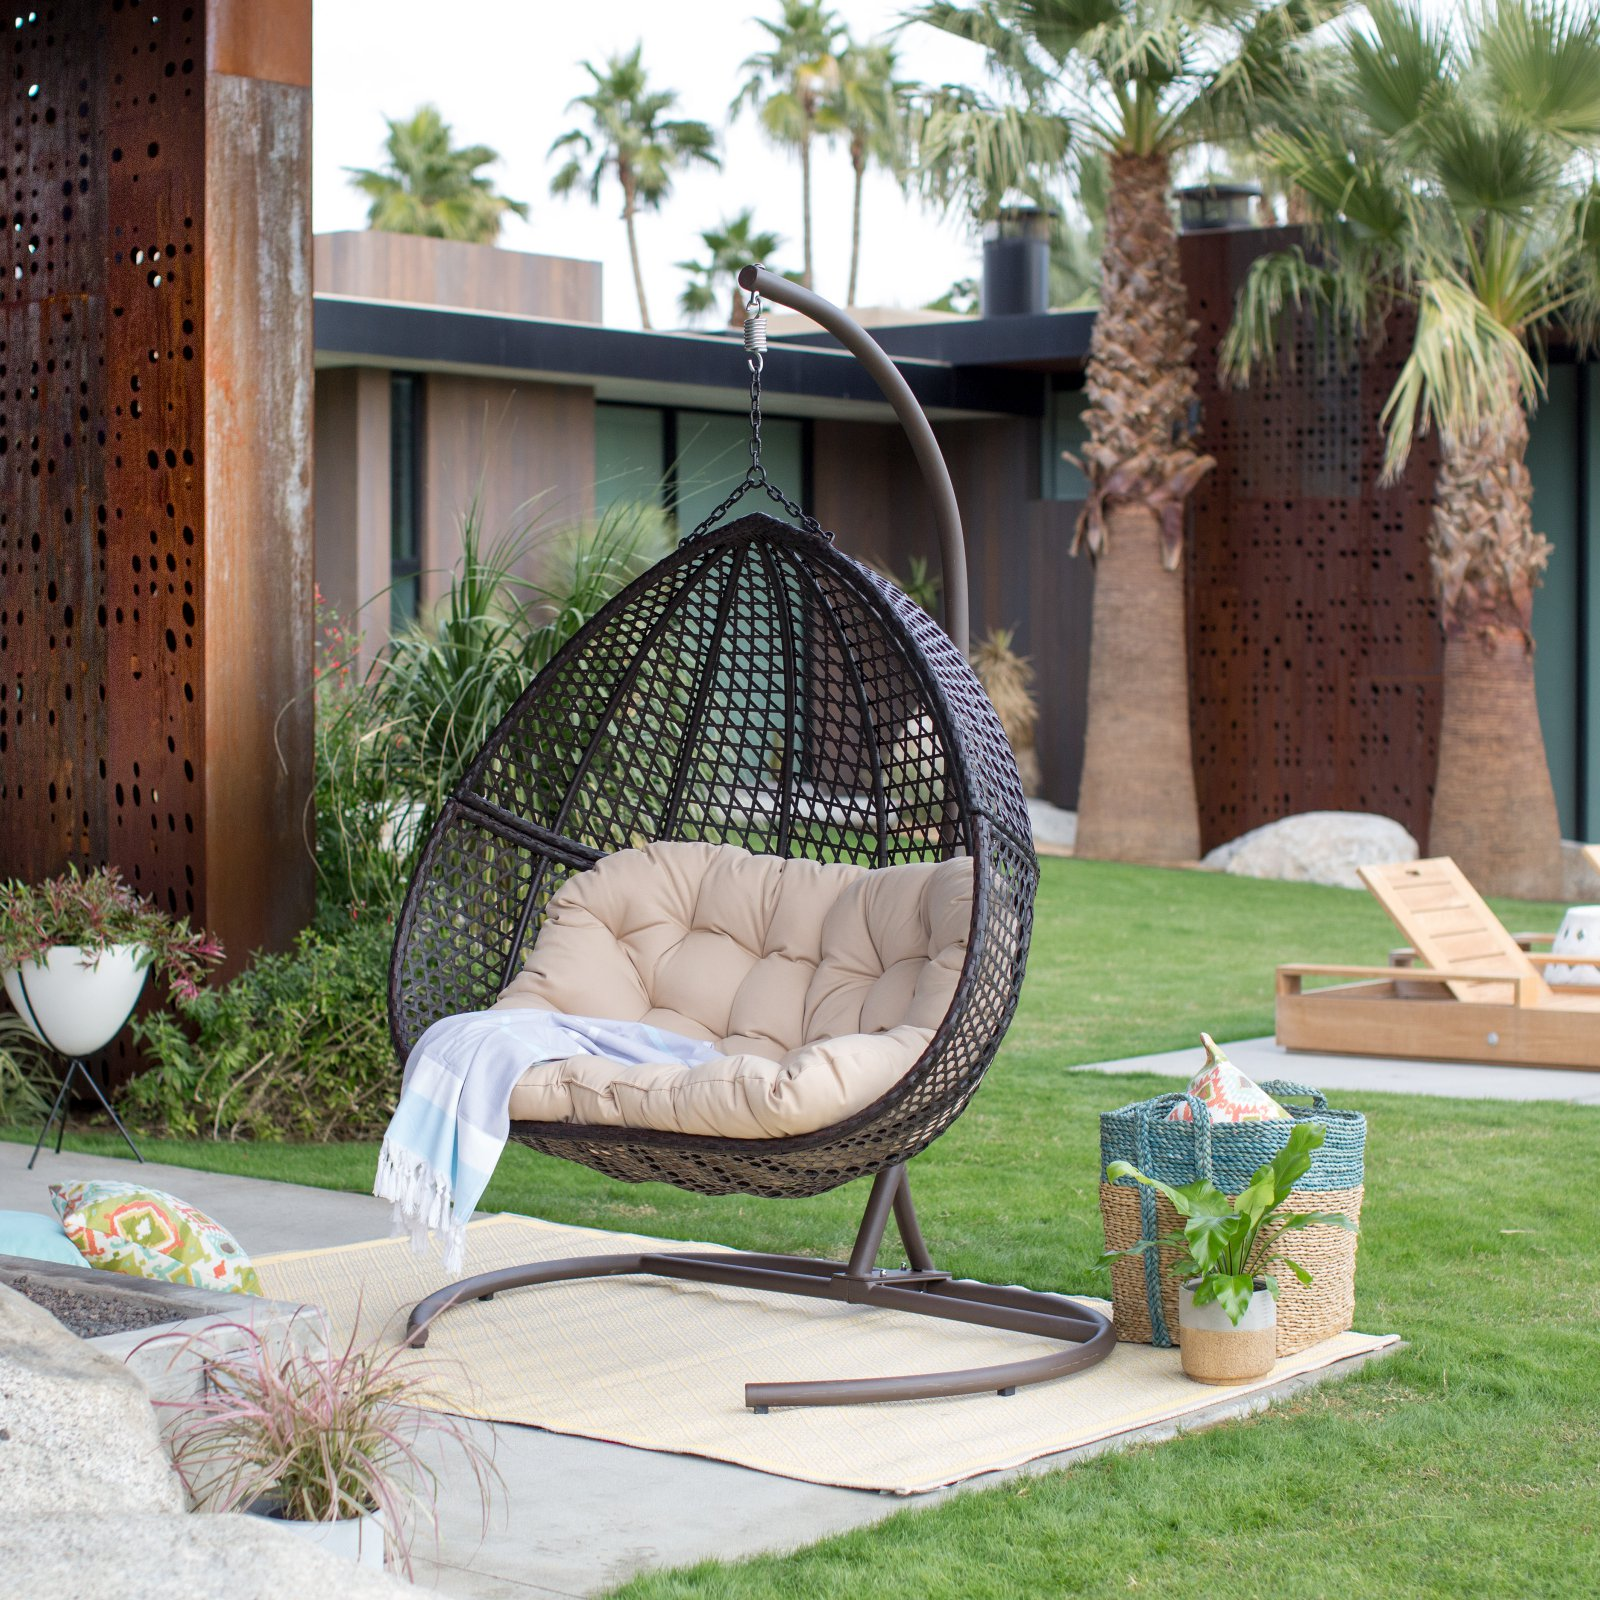 Double Egg Chair Details About Giant Hanging Double Egg Chair W Stand And Pad Wicker Hammock Outdoor Swing Seat